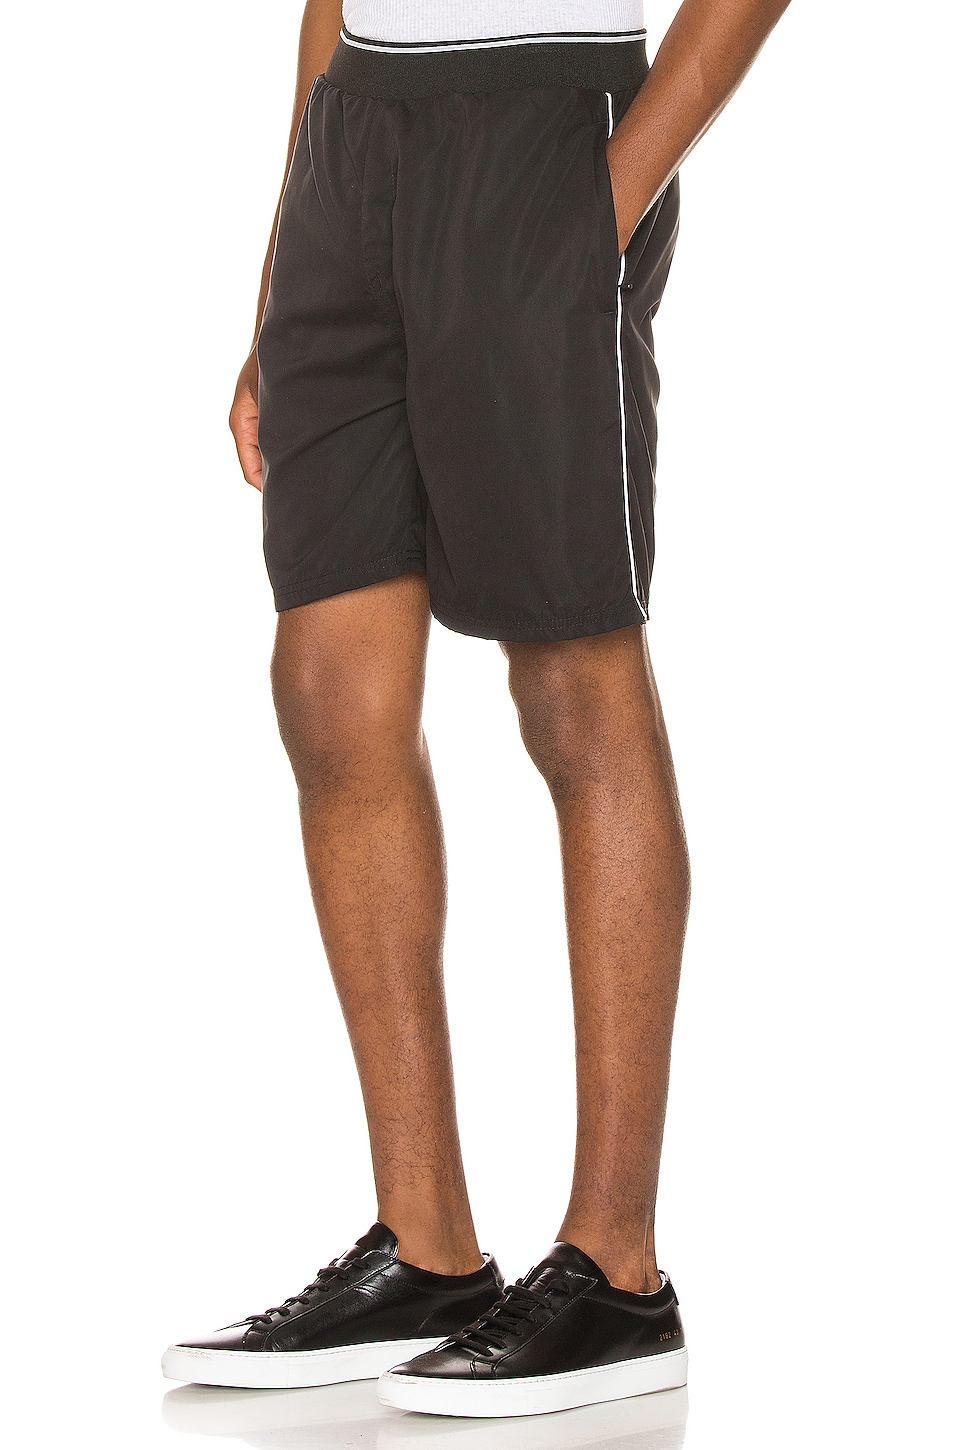 Zanerobe Jumpa Short in Black